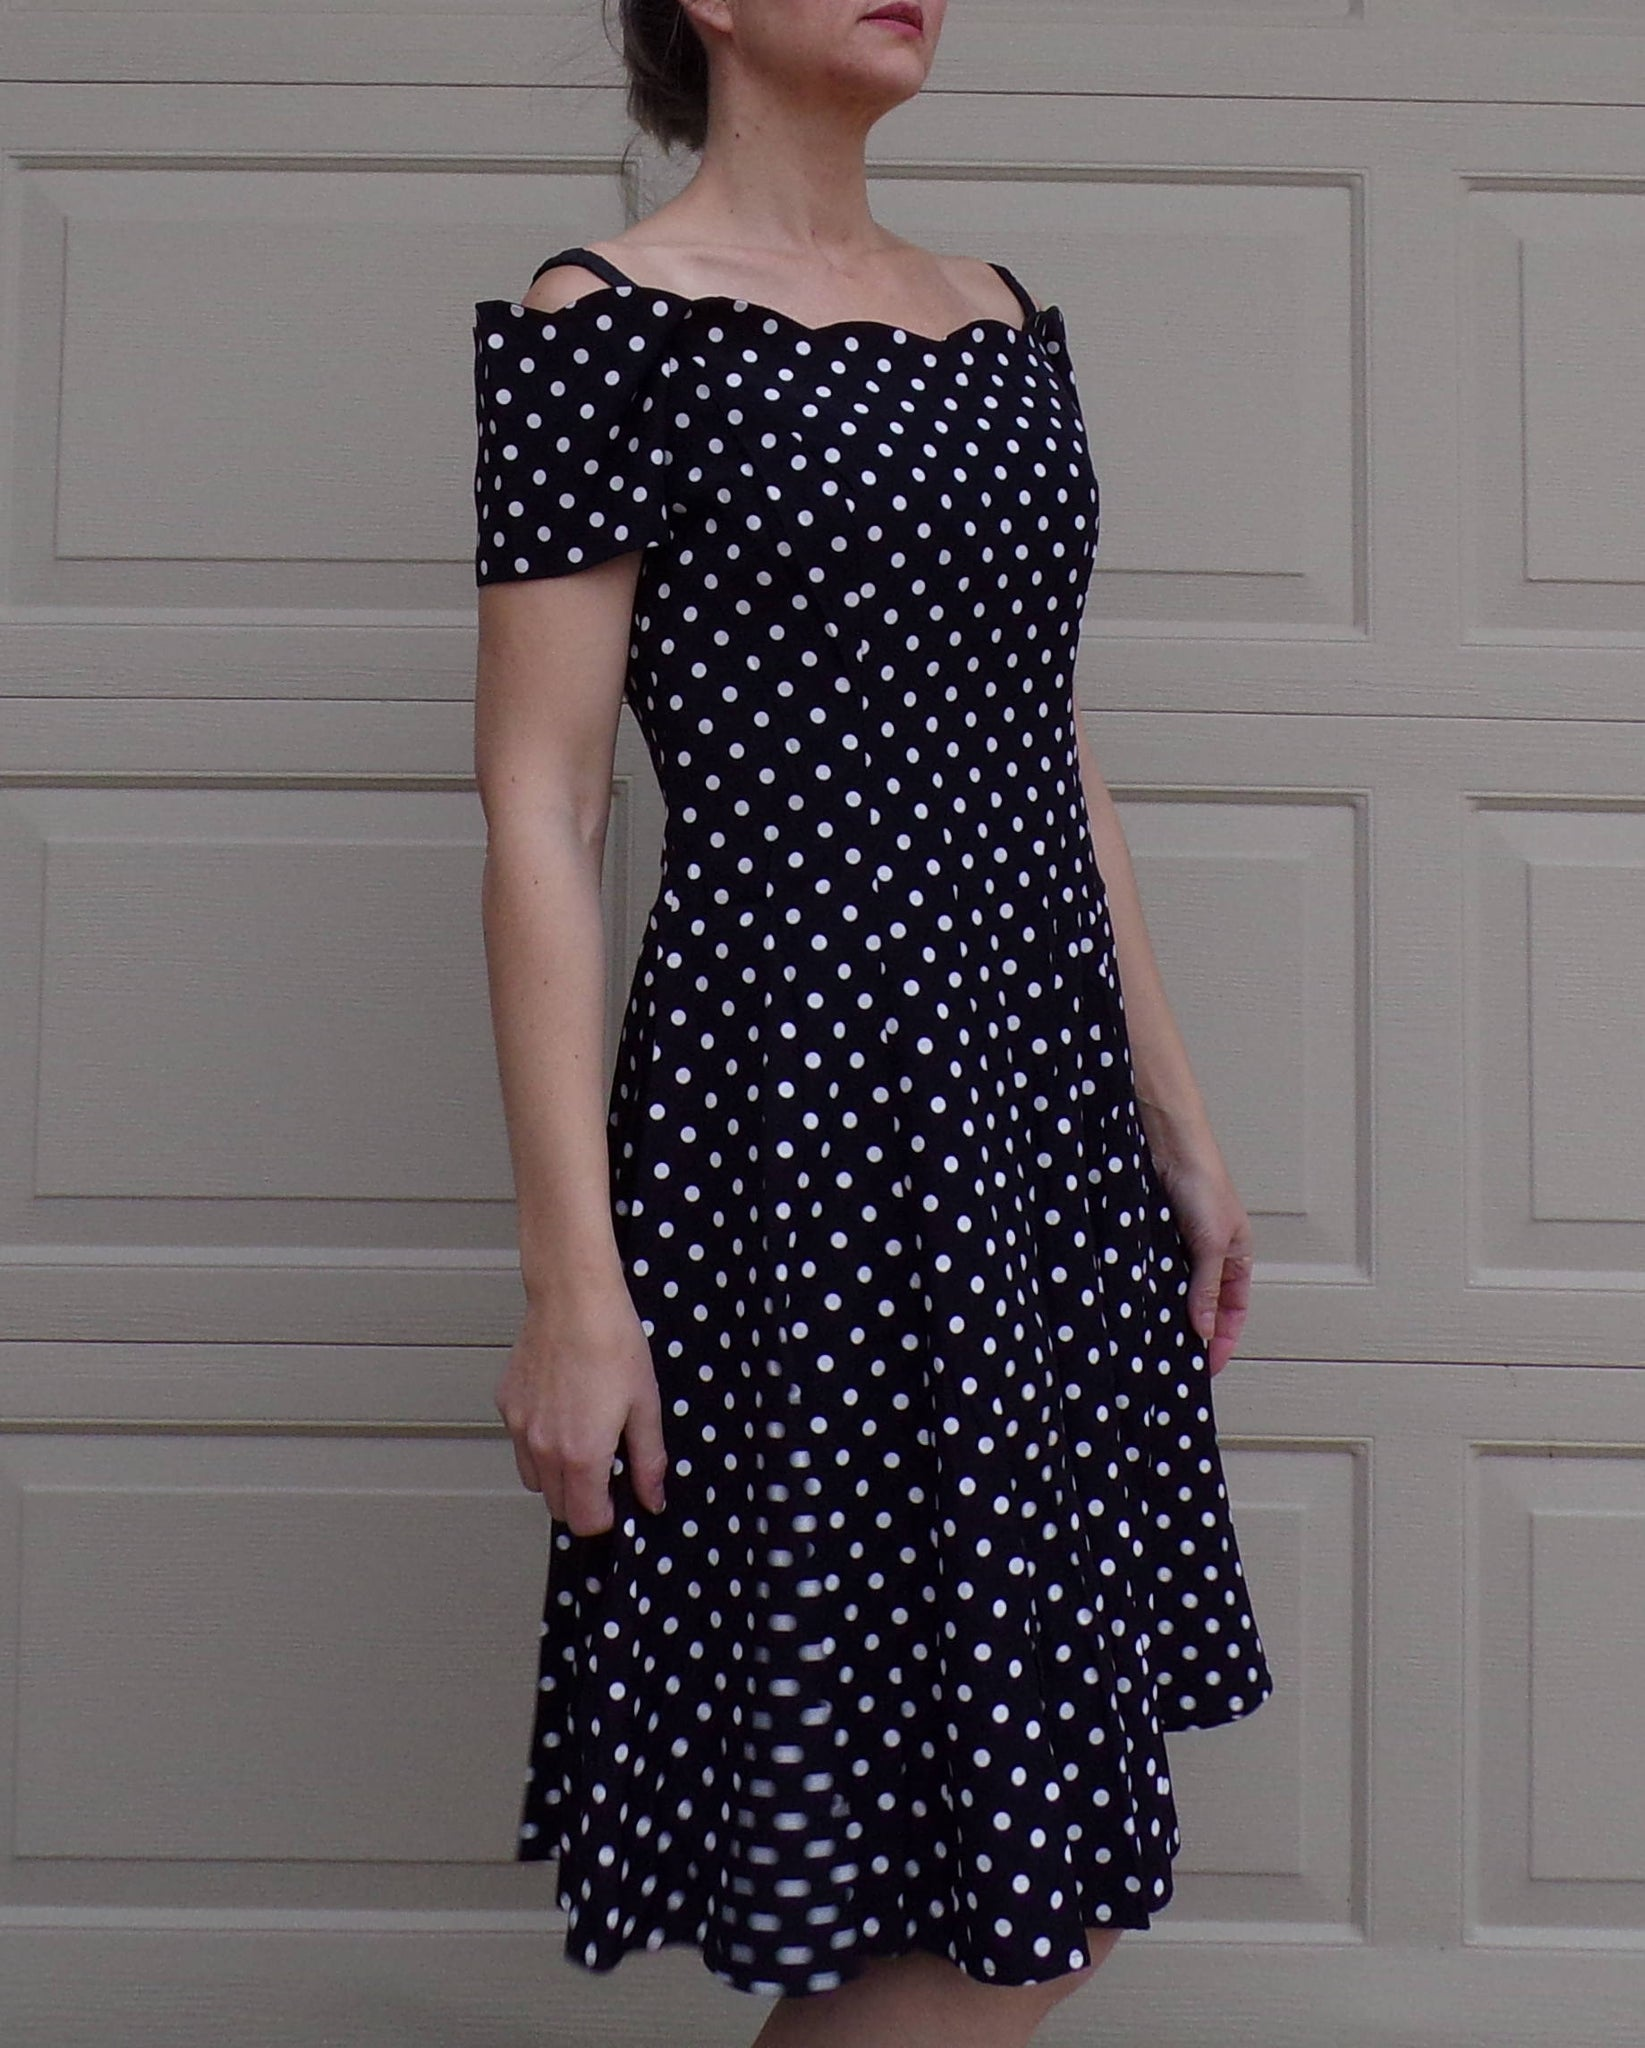 80's 90's POLKA DOT DRESS fit n flare off-shoulder S (G1)